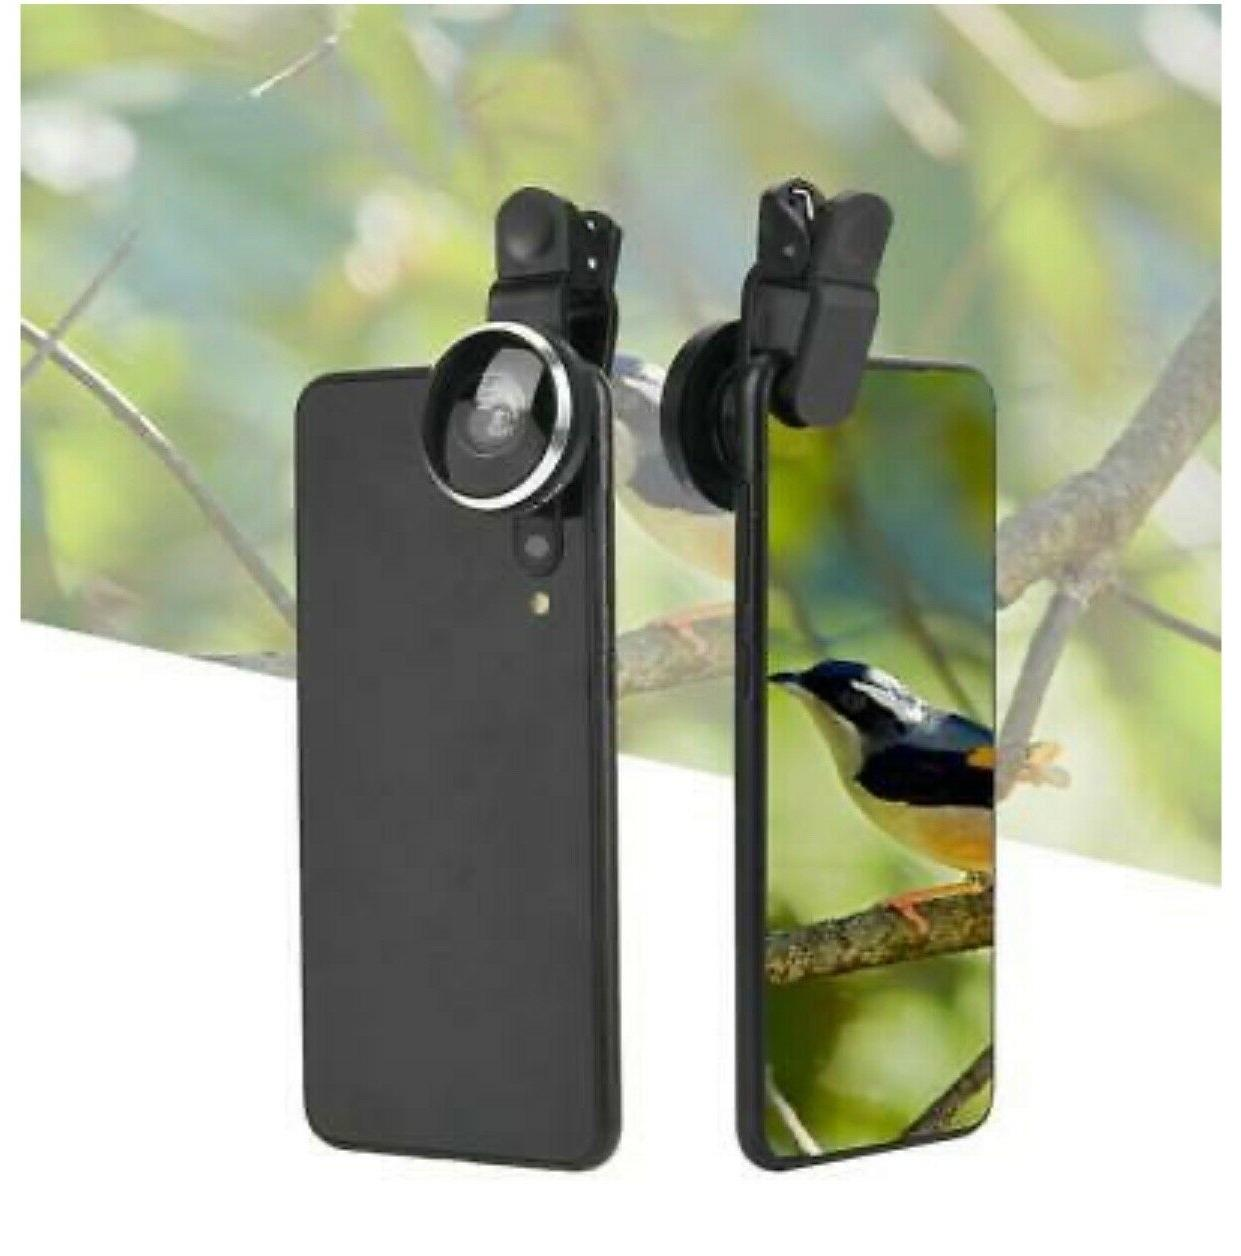 235°Super Camera Lens with Phone Clip 2 in